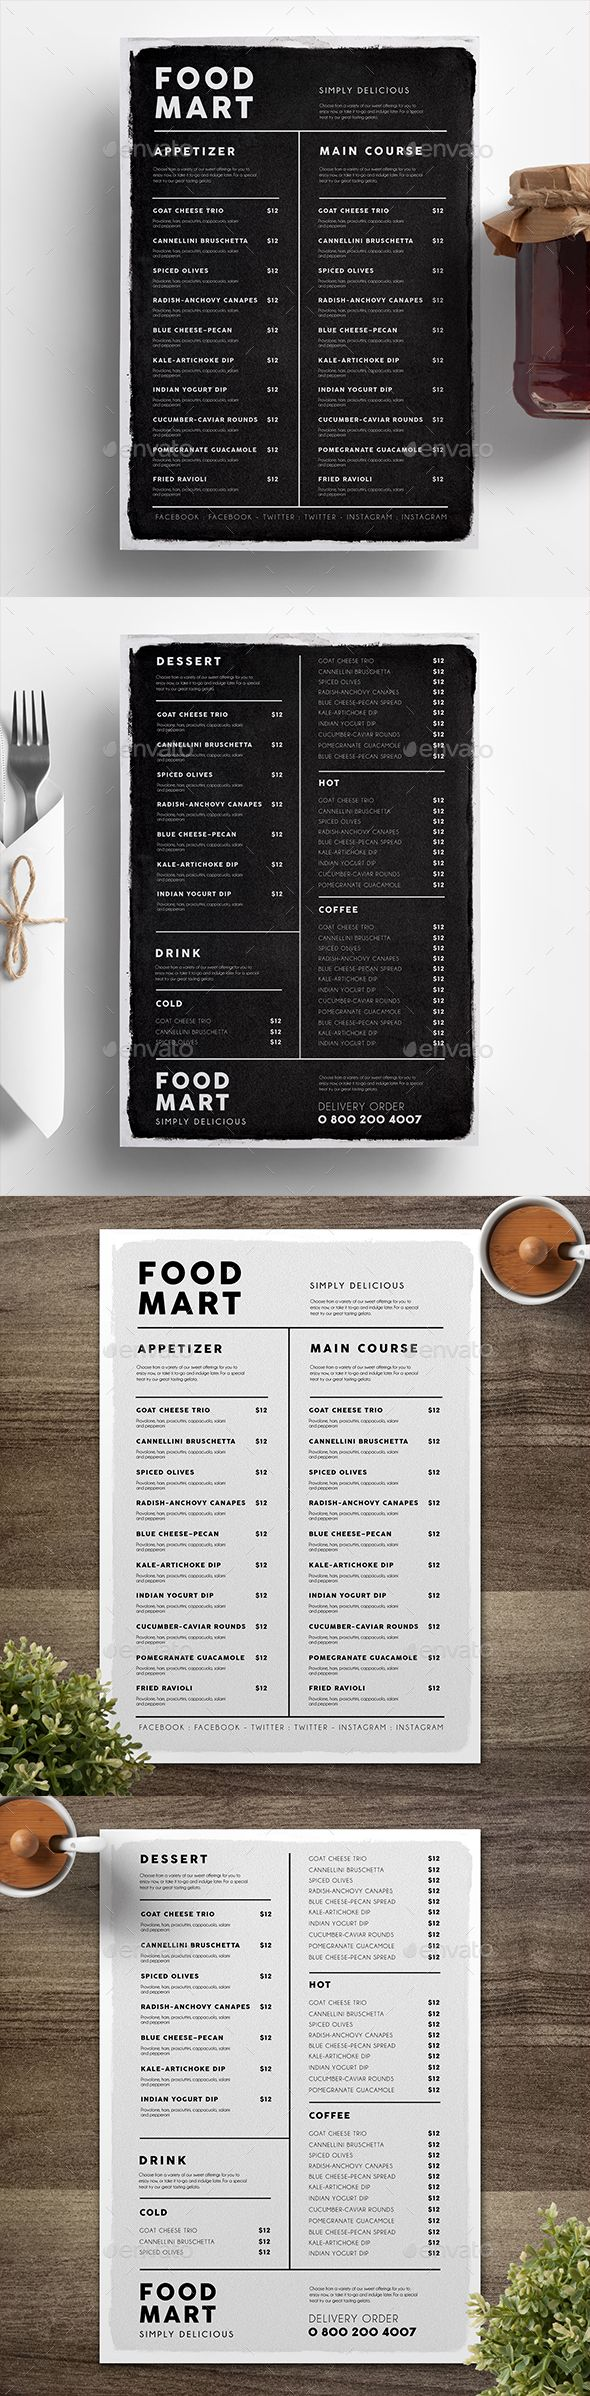 Simple Black & White Menu | Restaurante, Menus restaurantes y ...